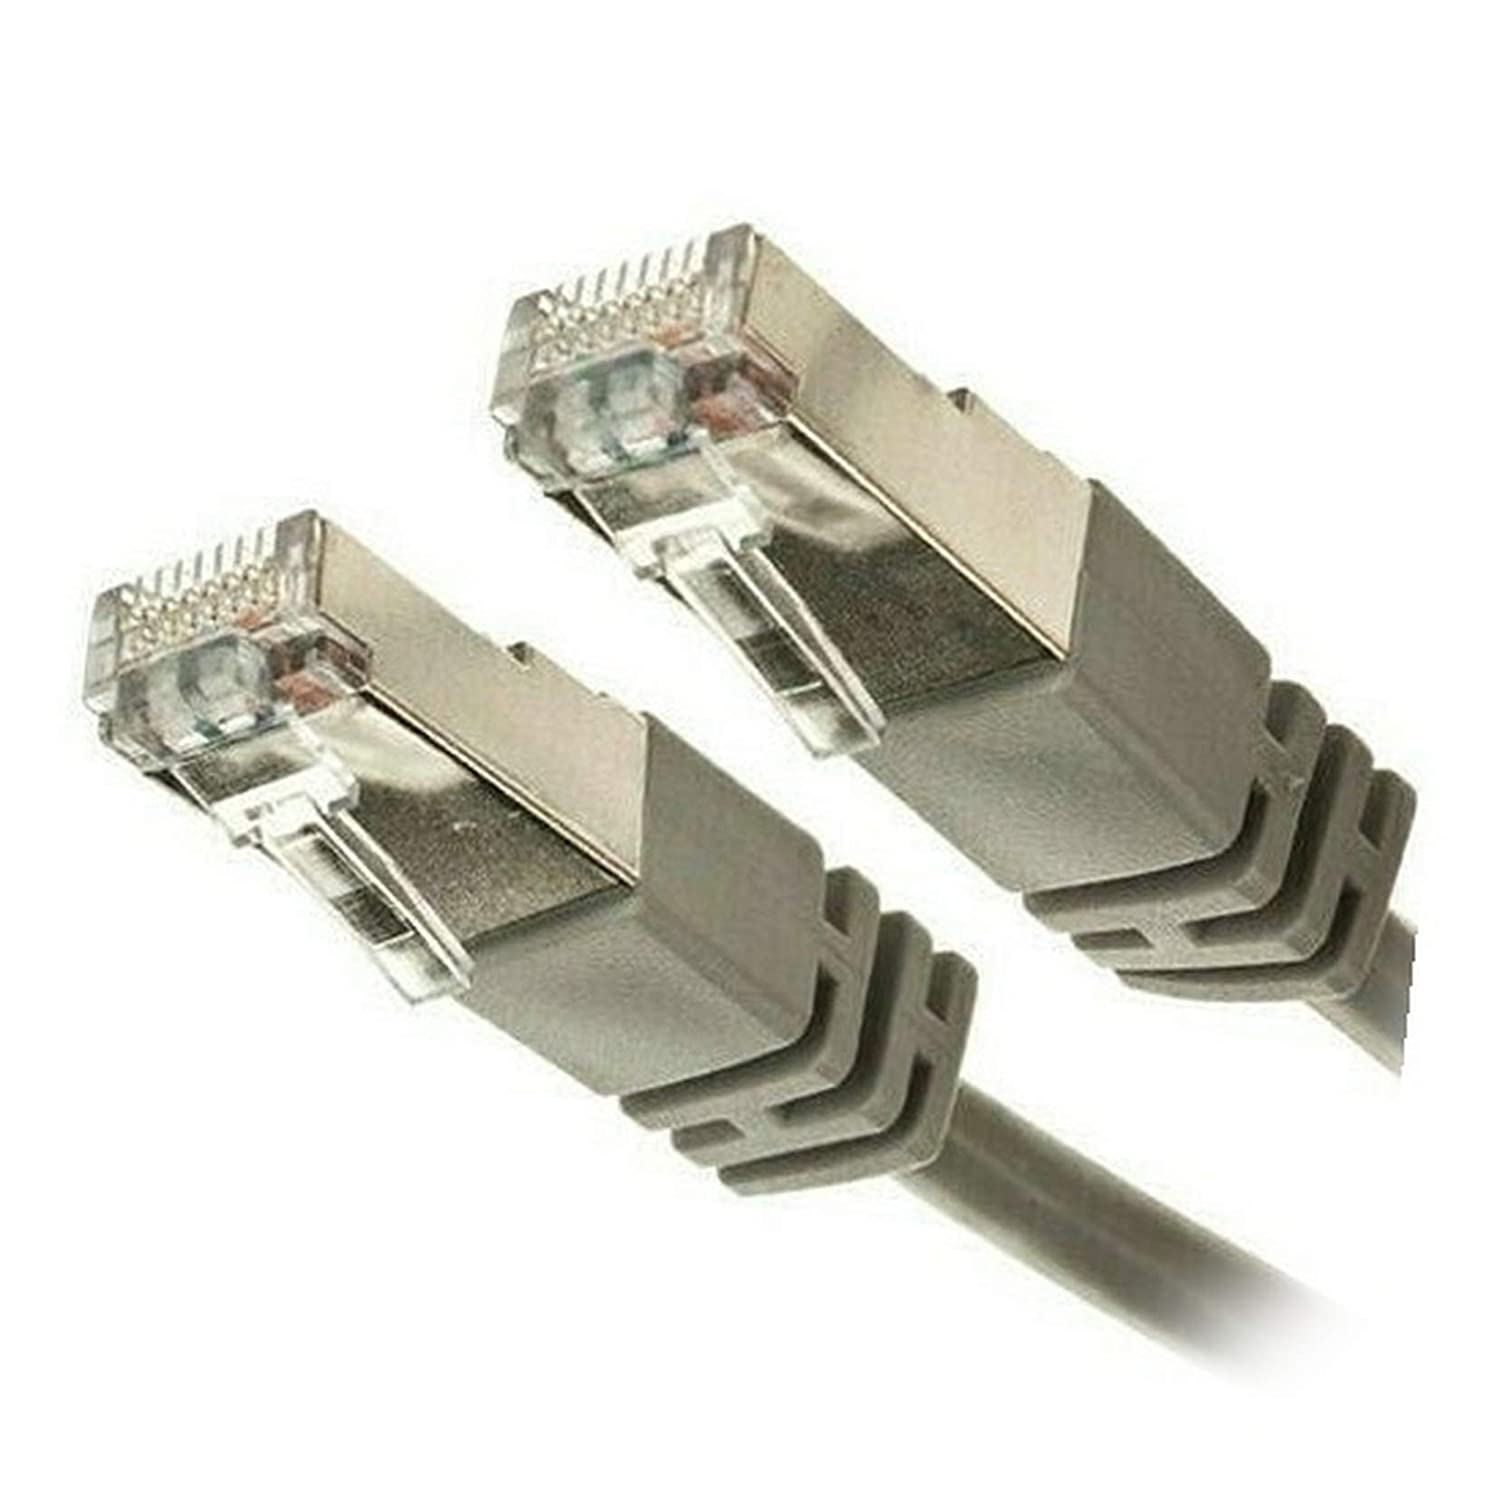 New 25 Pack - 1ft Shielded Ethernet Recommended Router STP Patch Max 79% OFF Network Cab